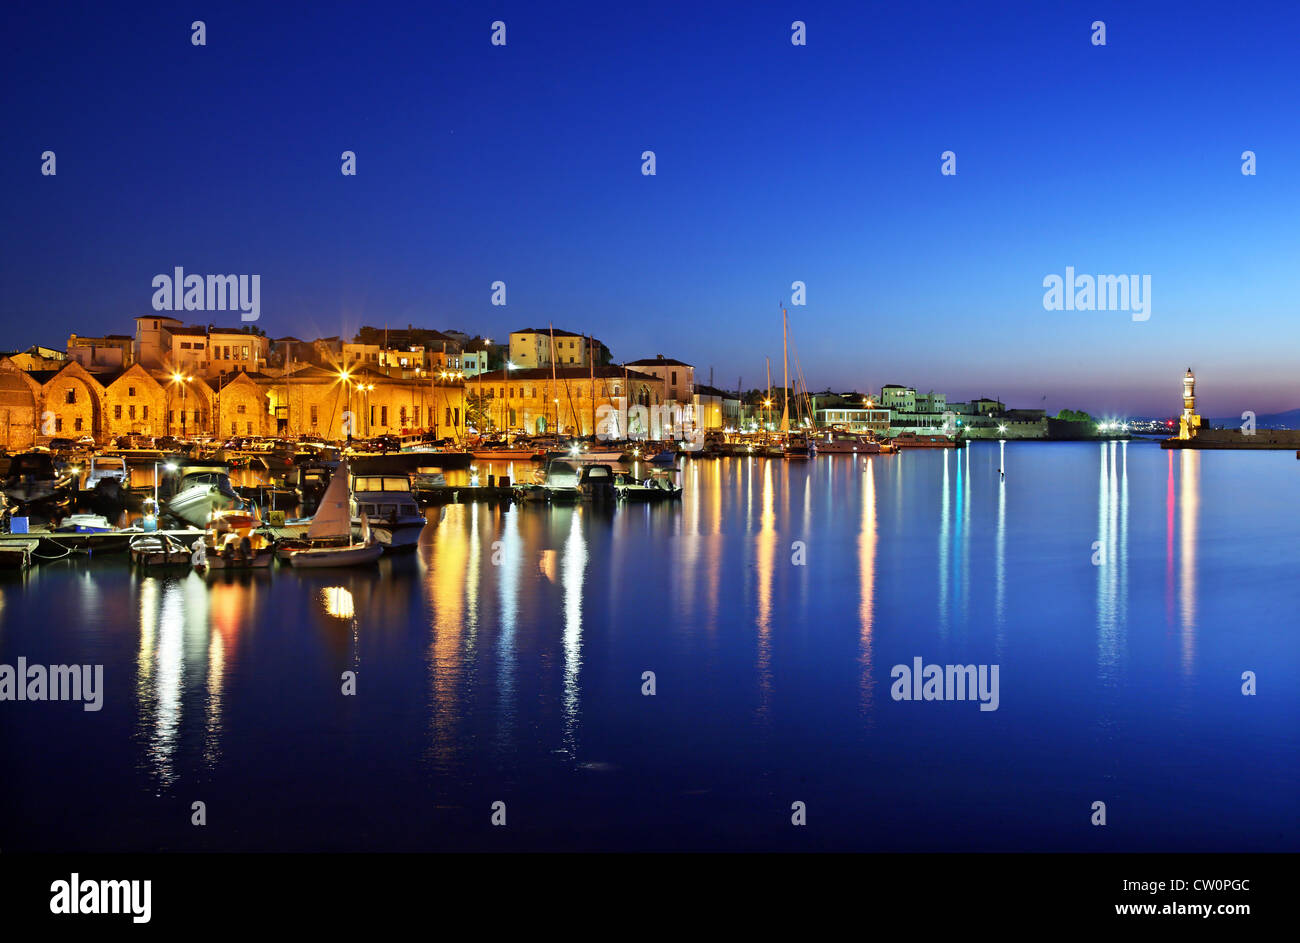 Night view of the old harbor of Chania town, Crete, Greece. Stock Photo